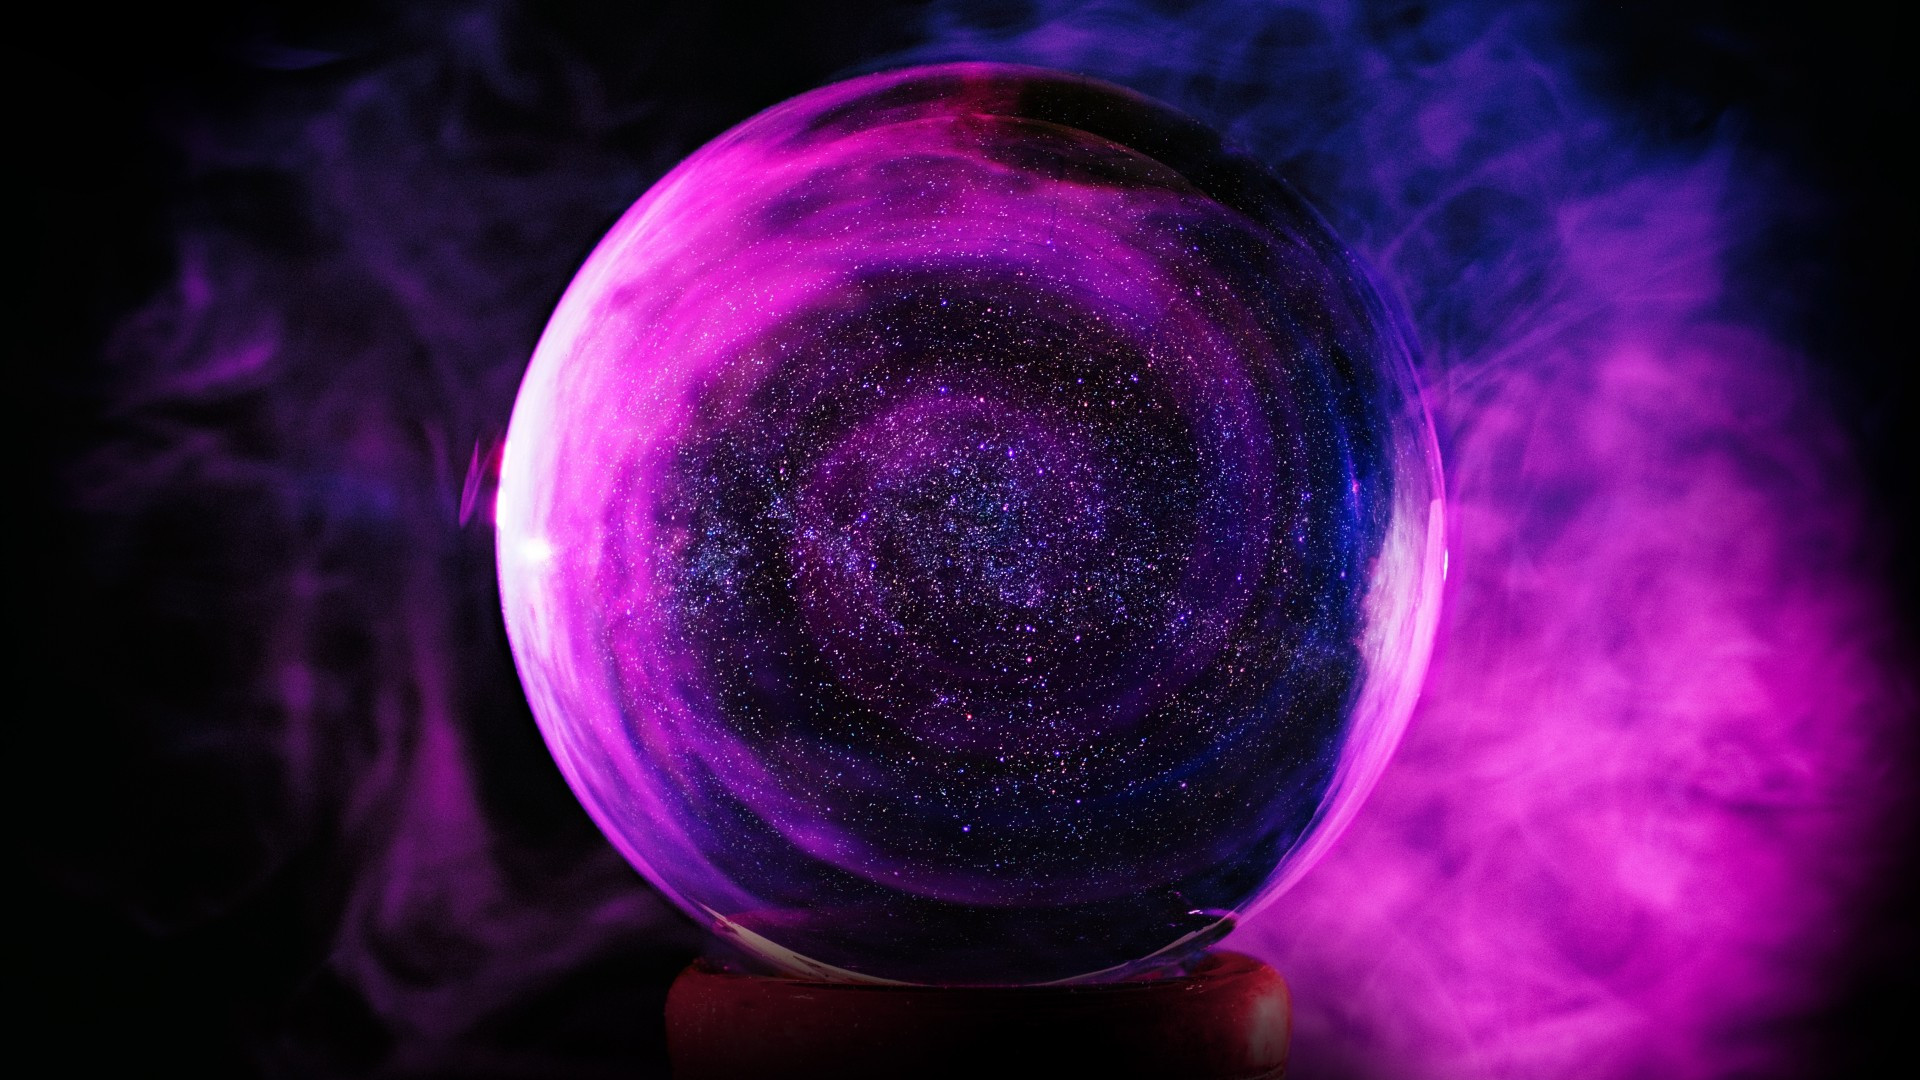 neon ball stars galaxy purple abstract